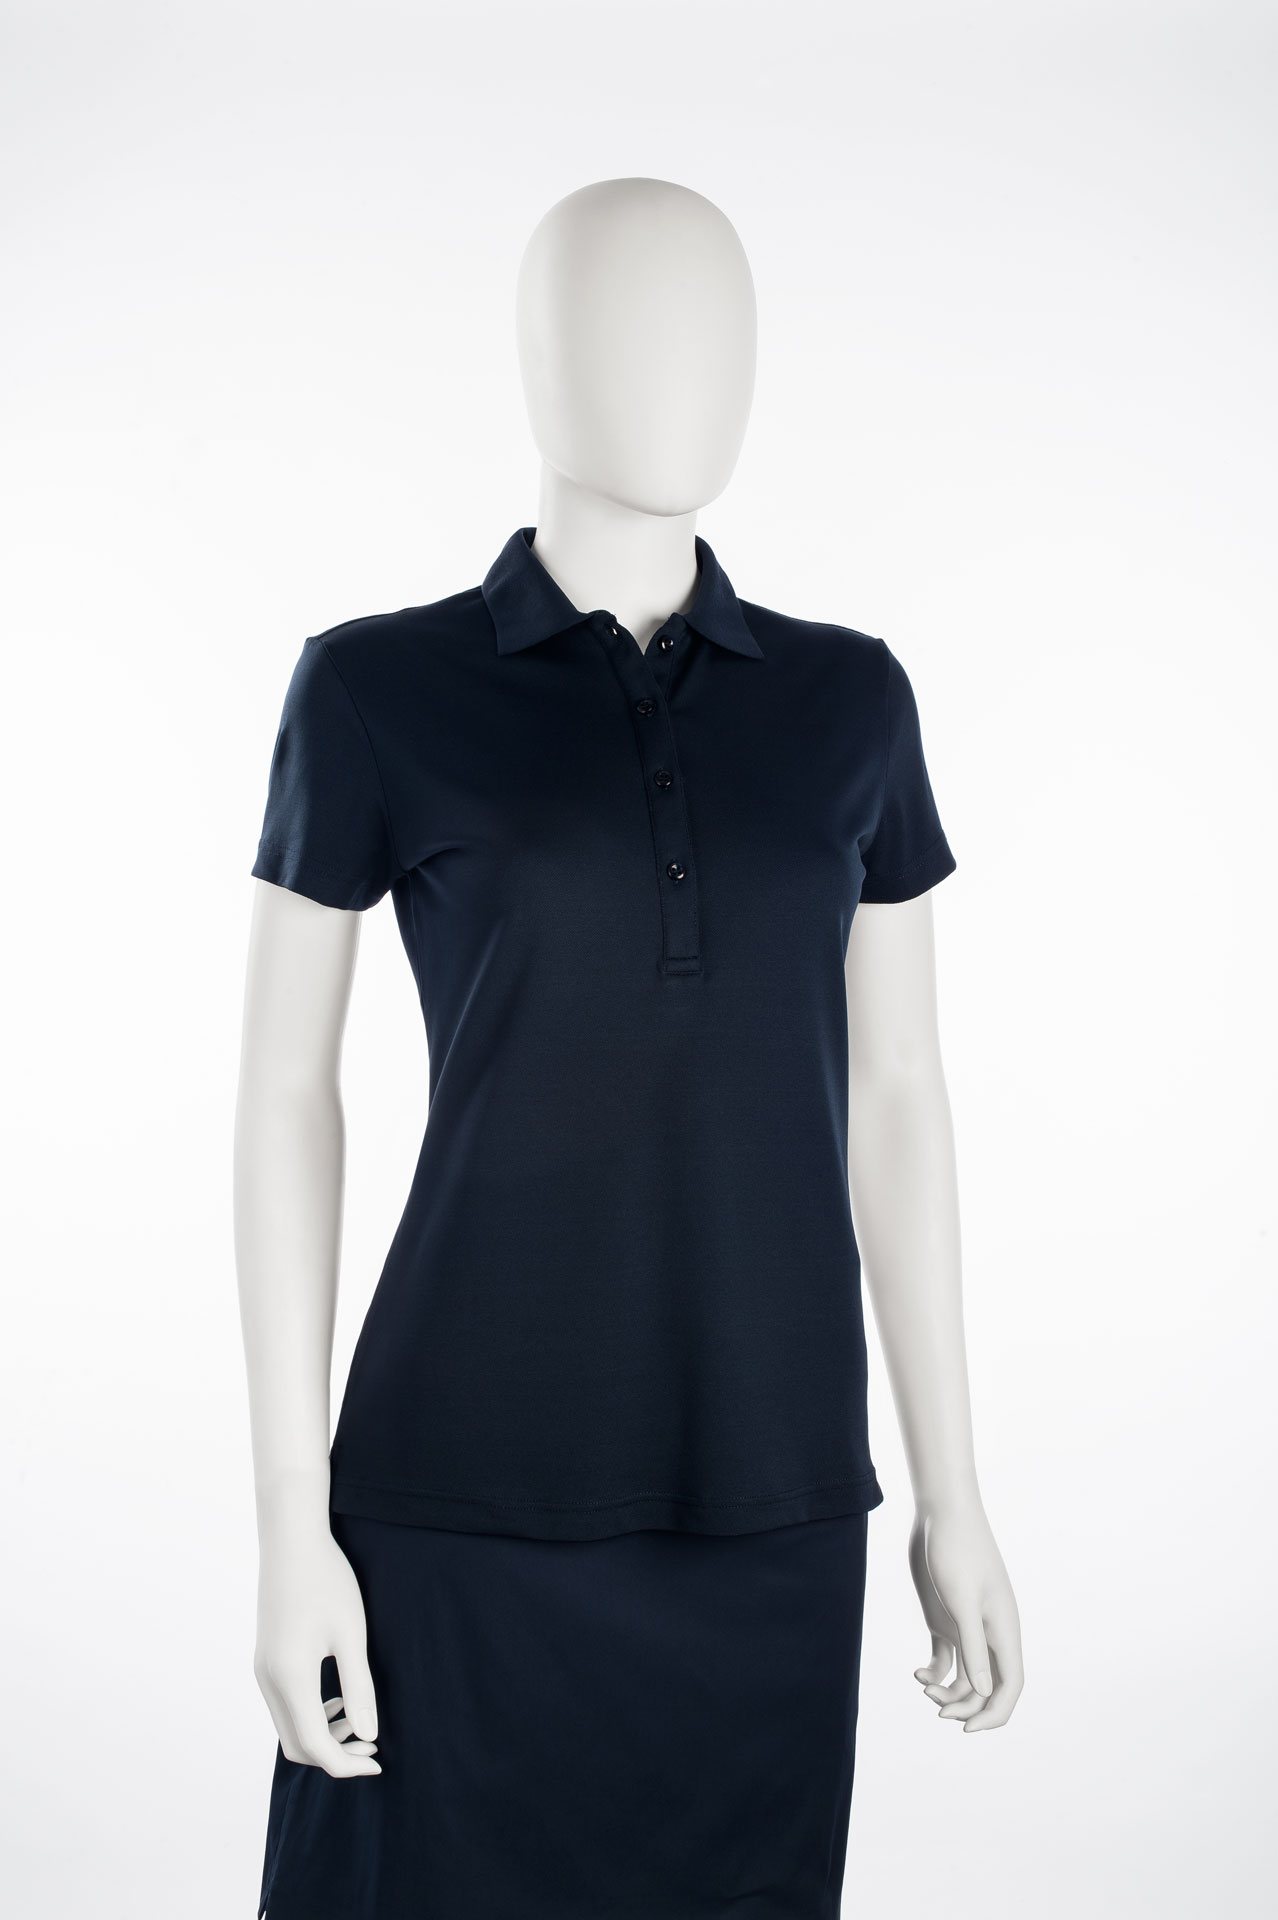 Polo donna manica corta art.7000 colore 0570